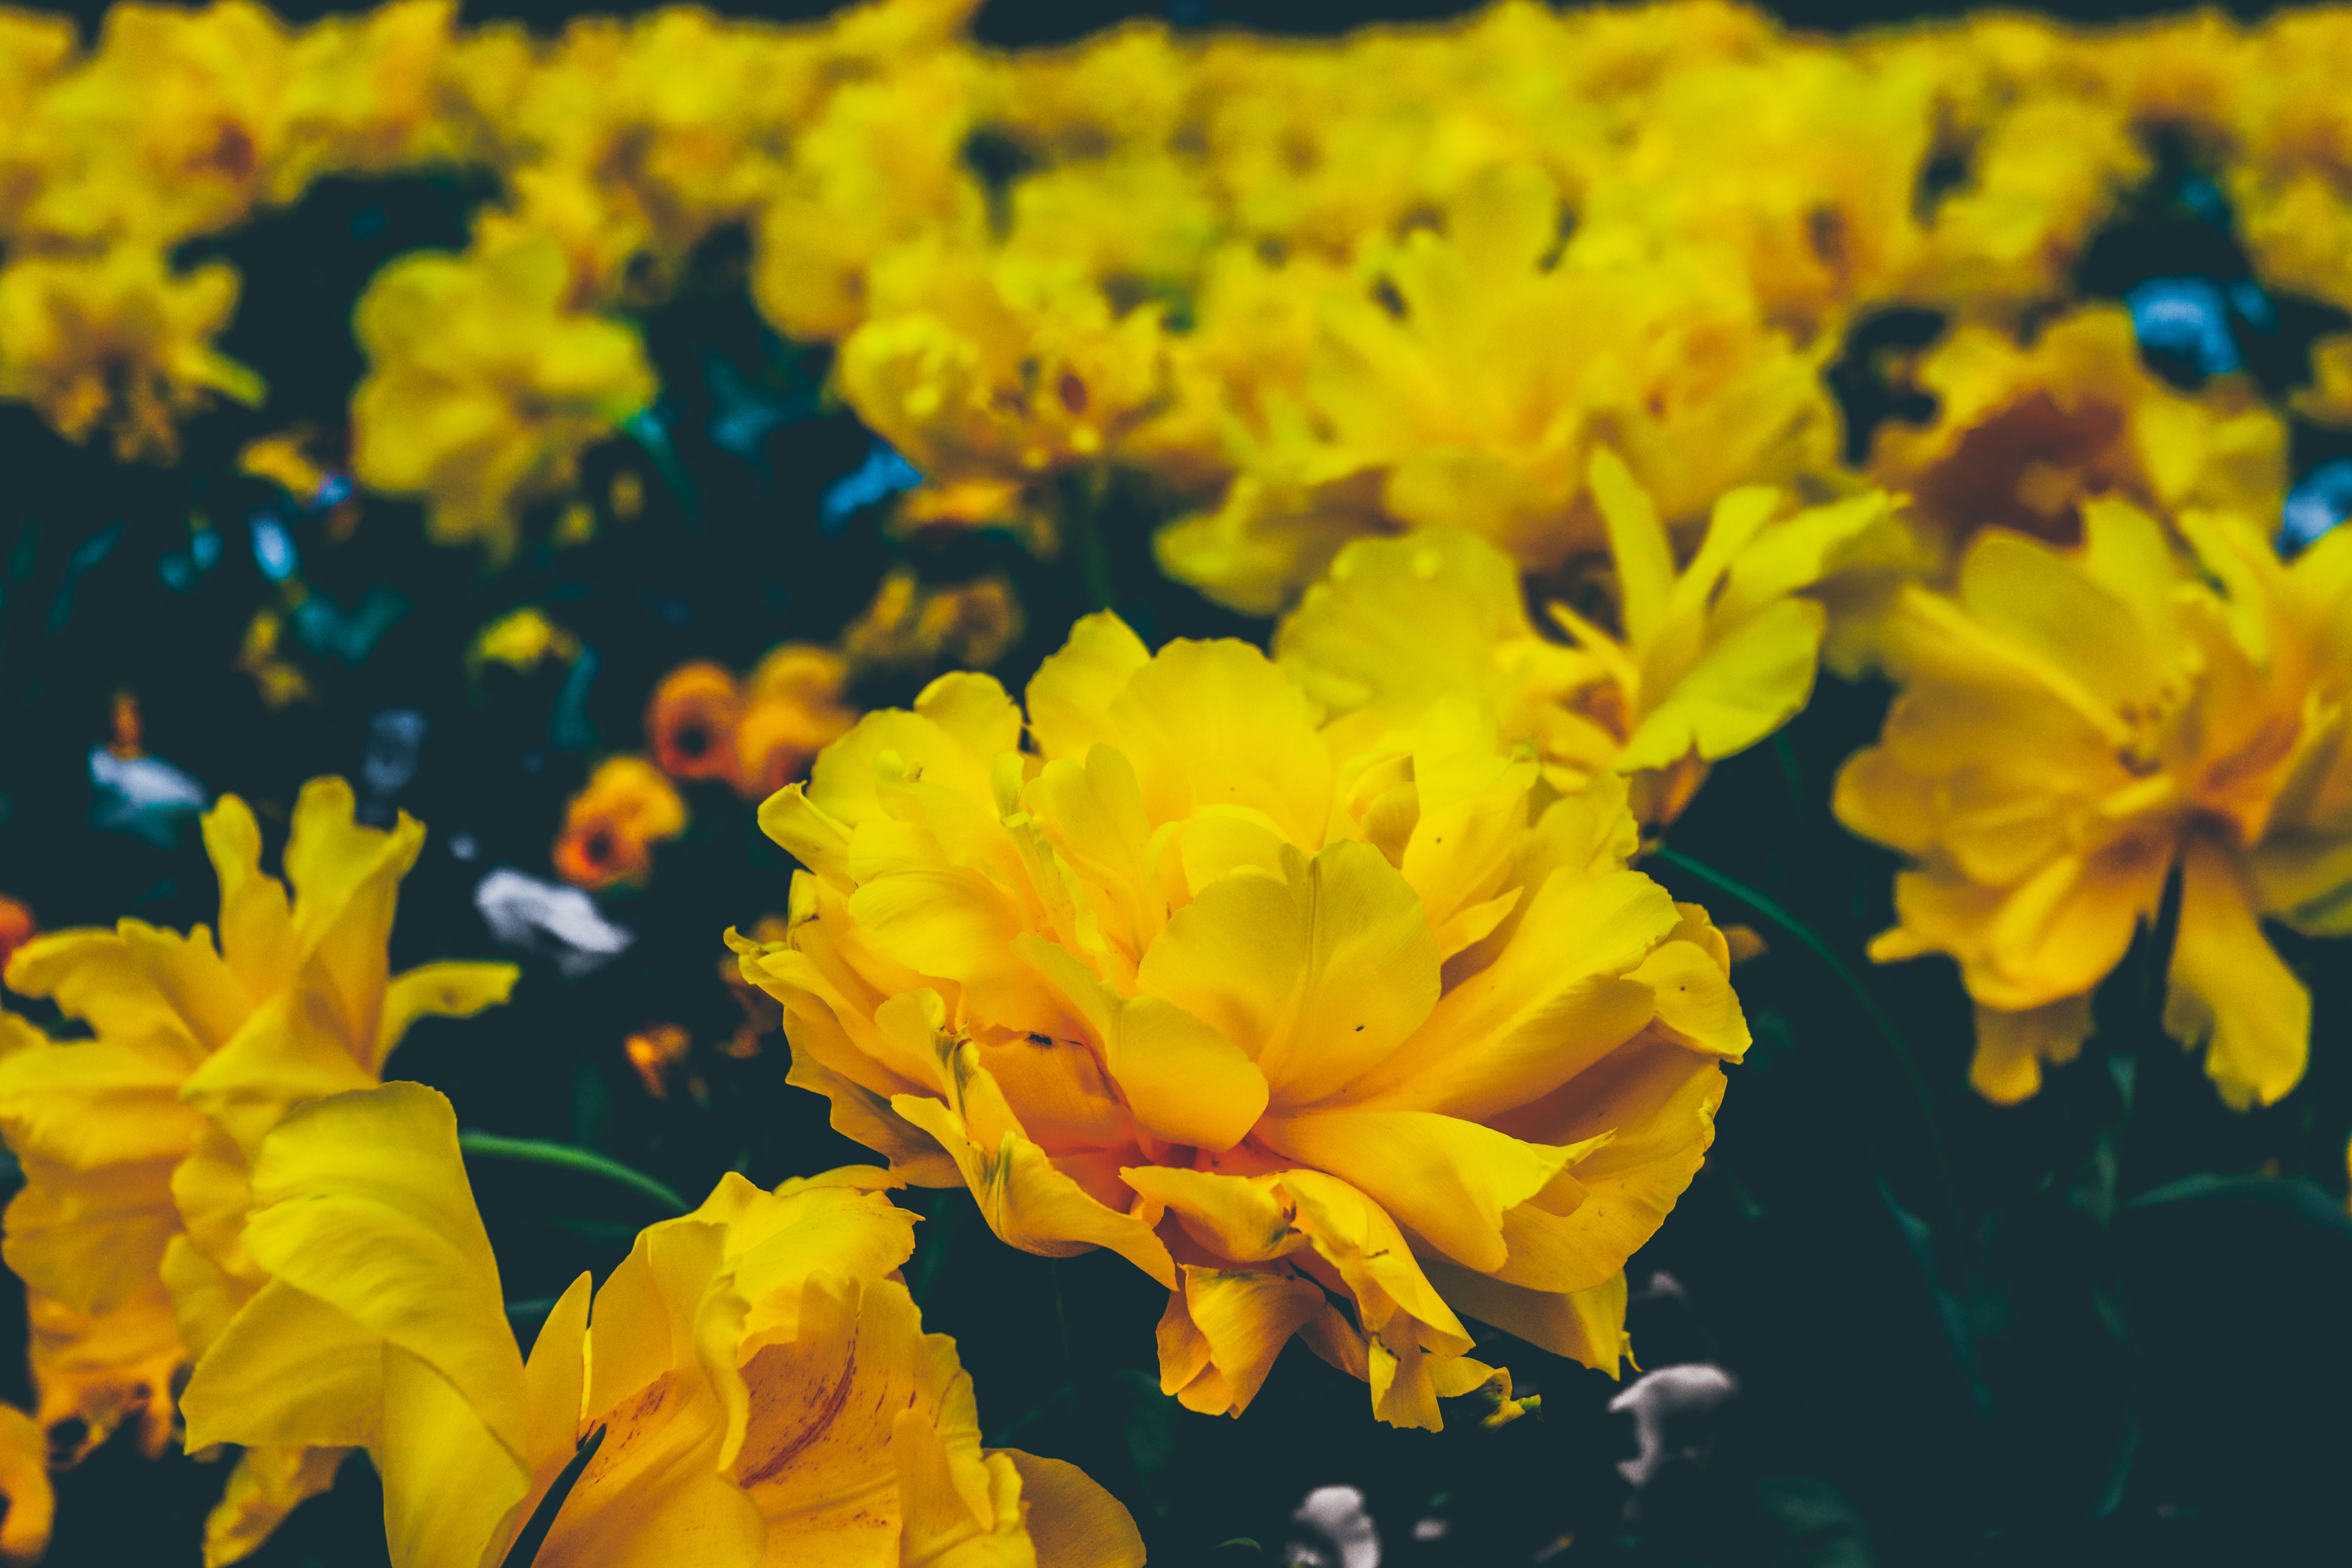 Yellow Flowers Wallpapers Pc Yellow Flowers Images In Special Aesthetic Wallpapers Yellow Wallpaper Laptop Wallpaper Desktop Wallpapers